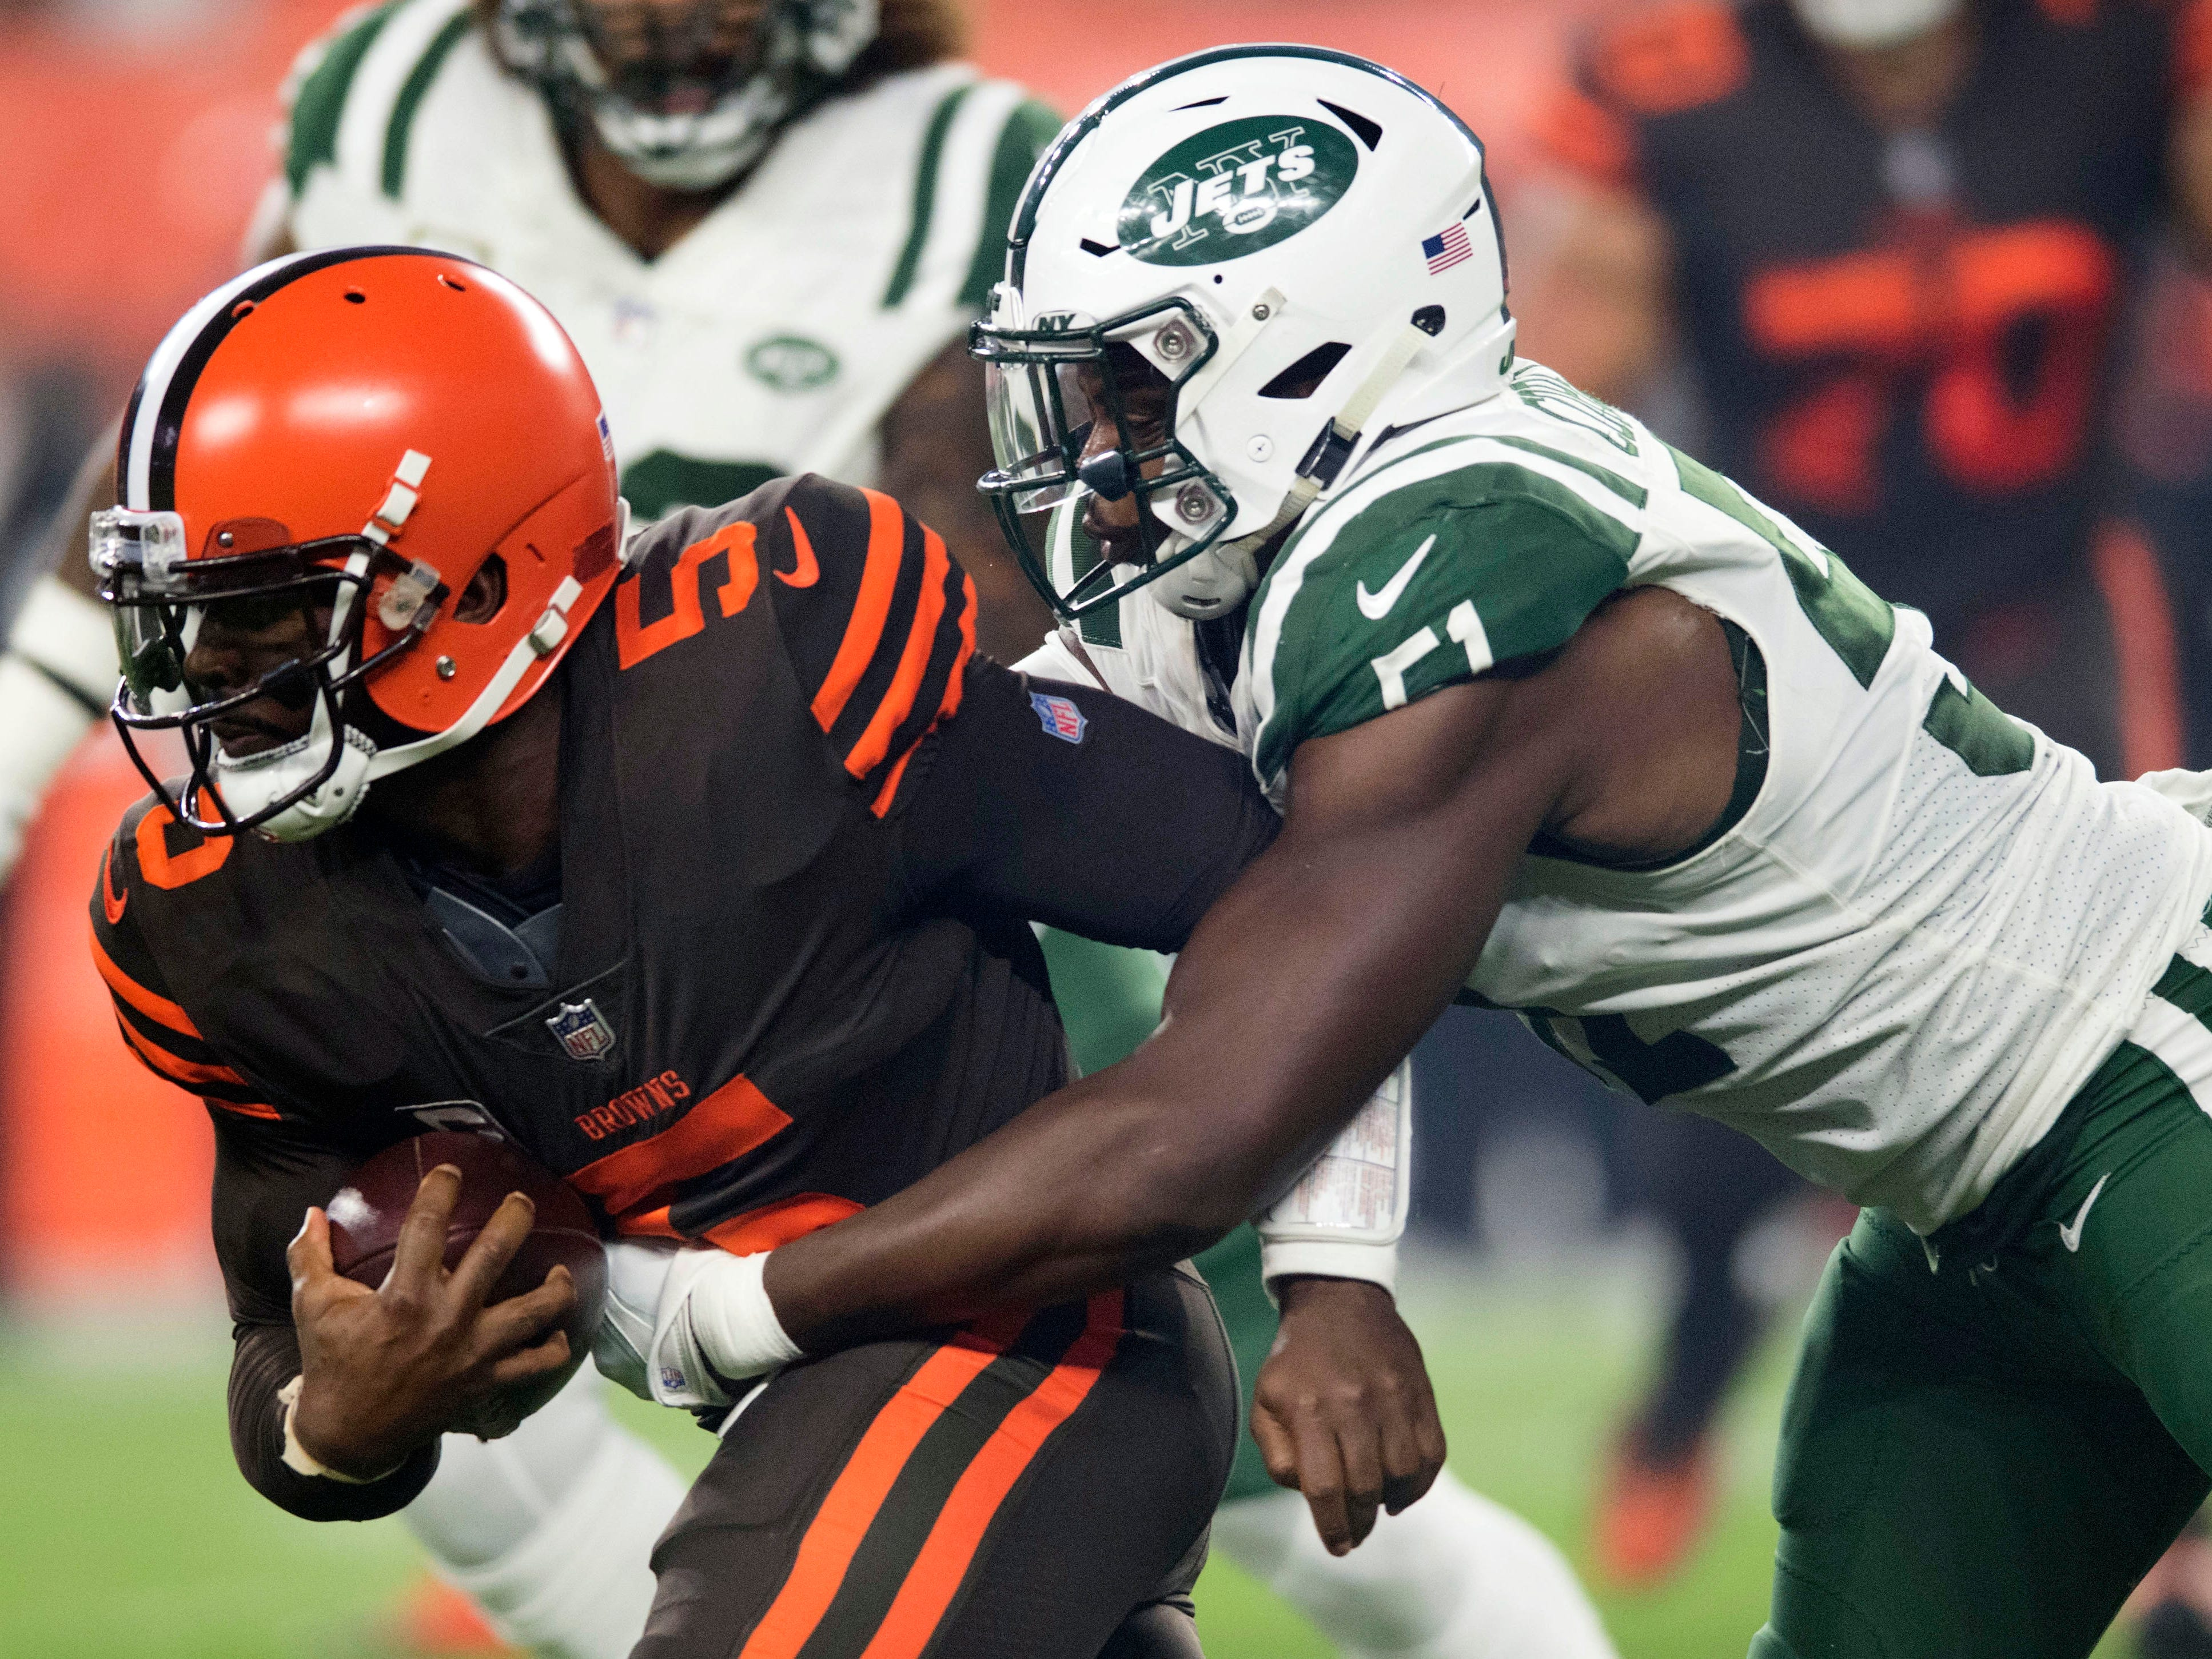 Cleveland Browns quarterback Tyrod Taylor is tackled by New York Jets linebacker Brandon Copeland during the first quarter at FirstEnergy Stadium.